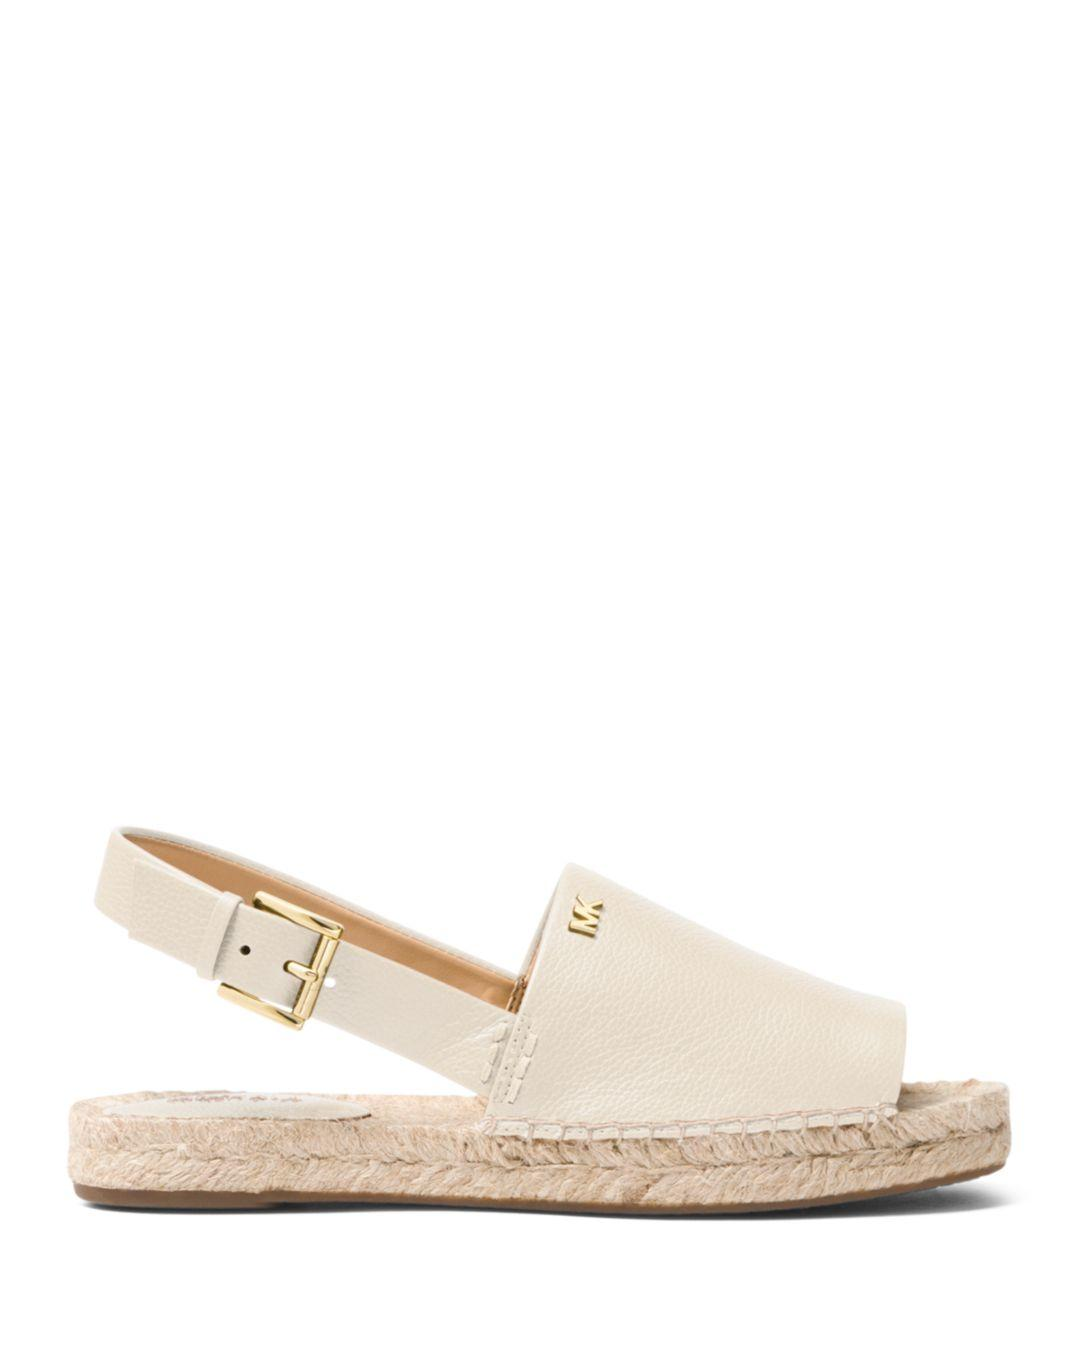 71a526e4a MICHAEL Michael Kors Women's Fisher Leather Espadrille Sandals in Natural -  Lyst